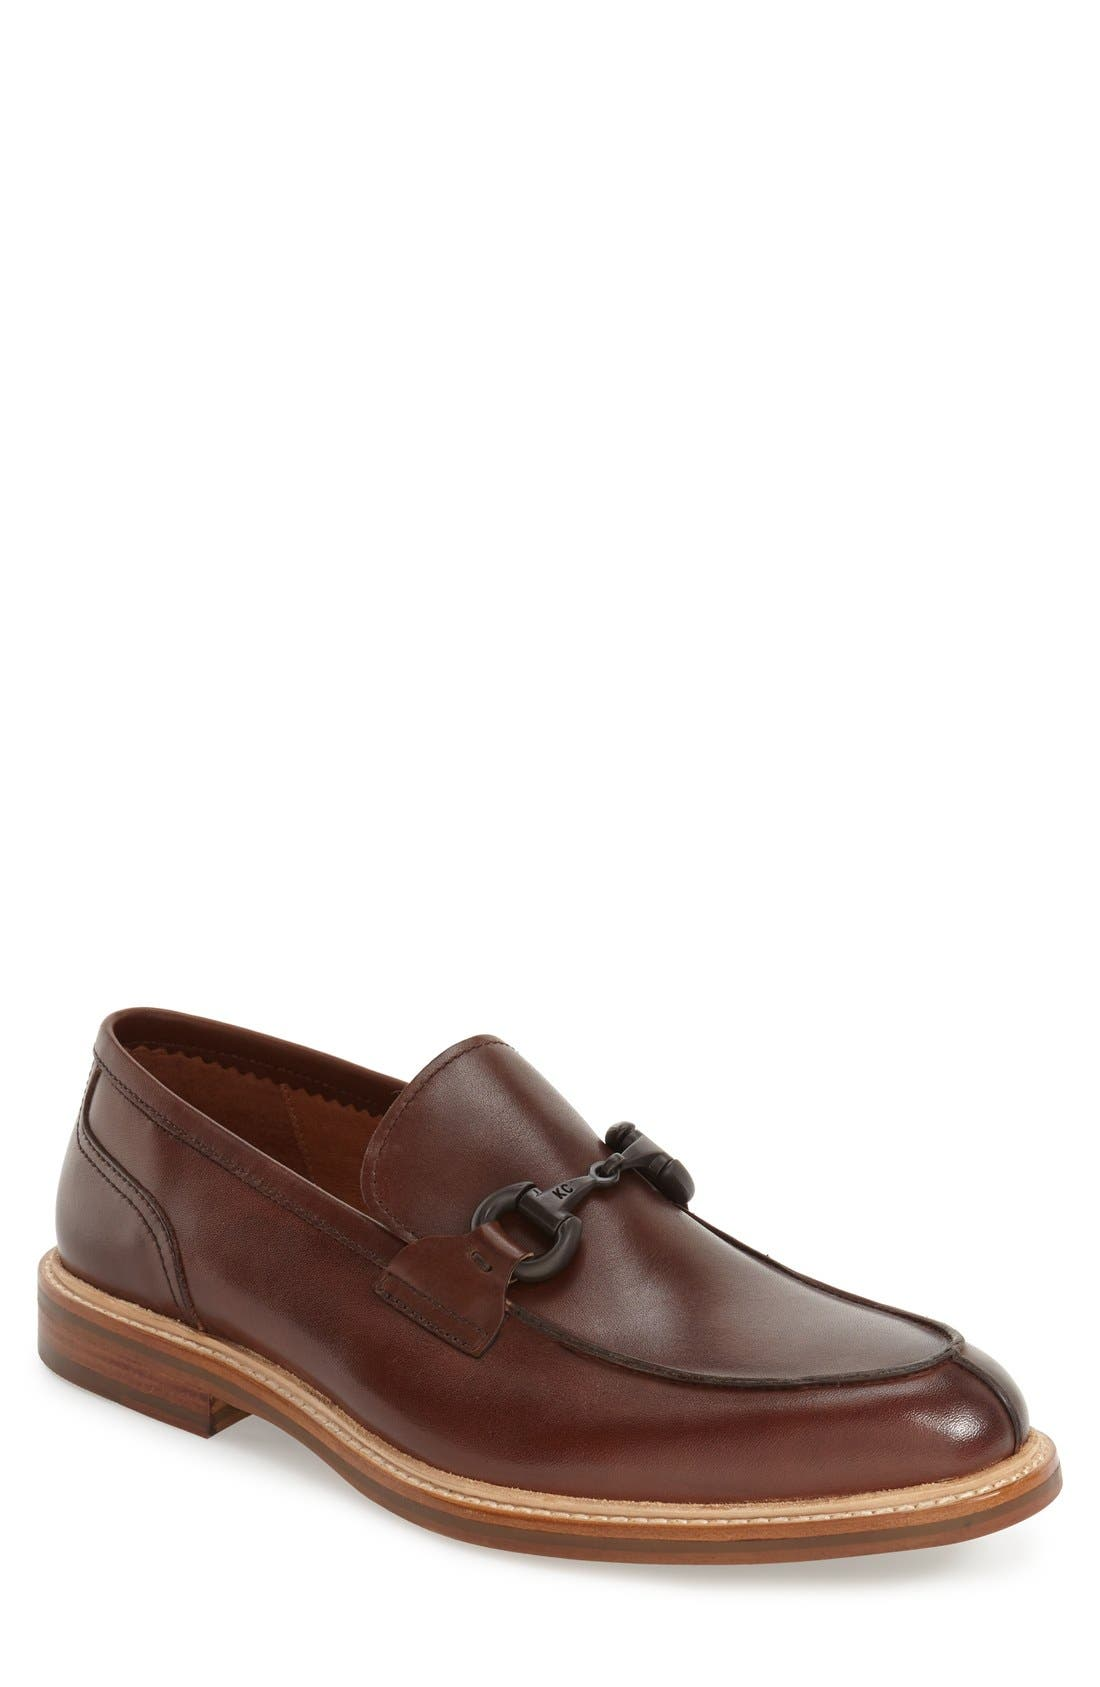 Main Image - Kenneth Cole New York 'Bud-Dy List' Venetian Loafer (Men)